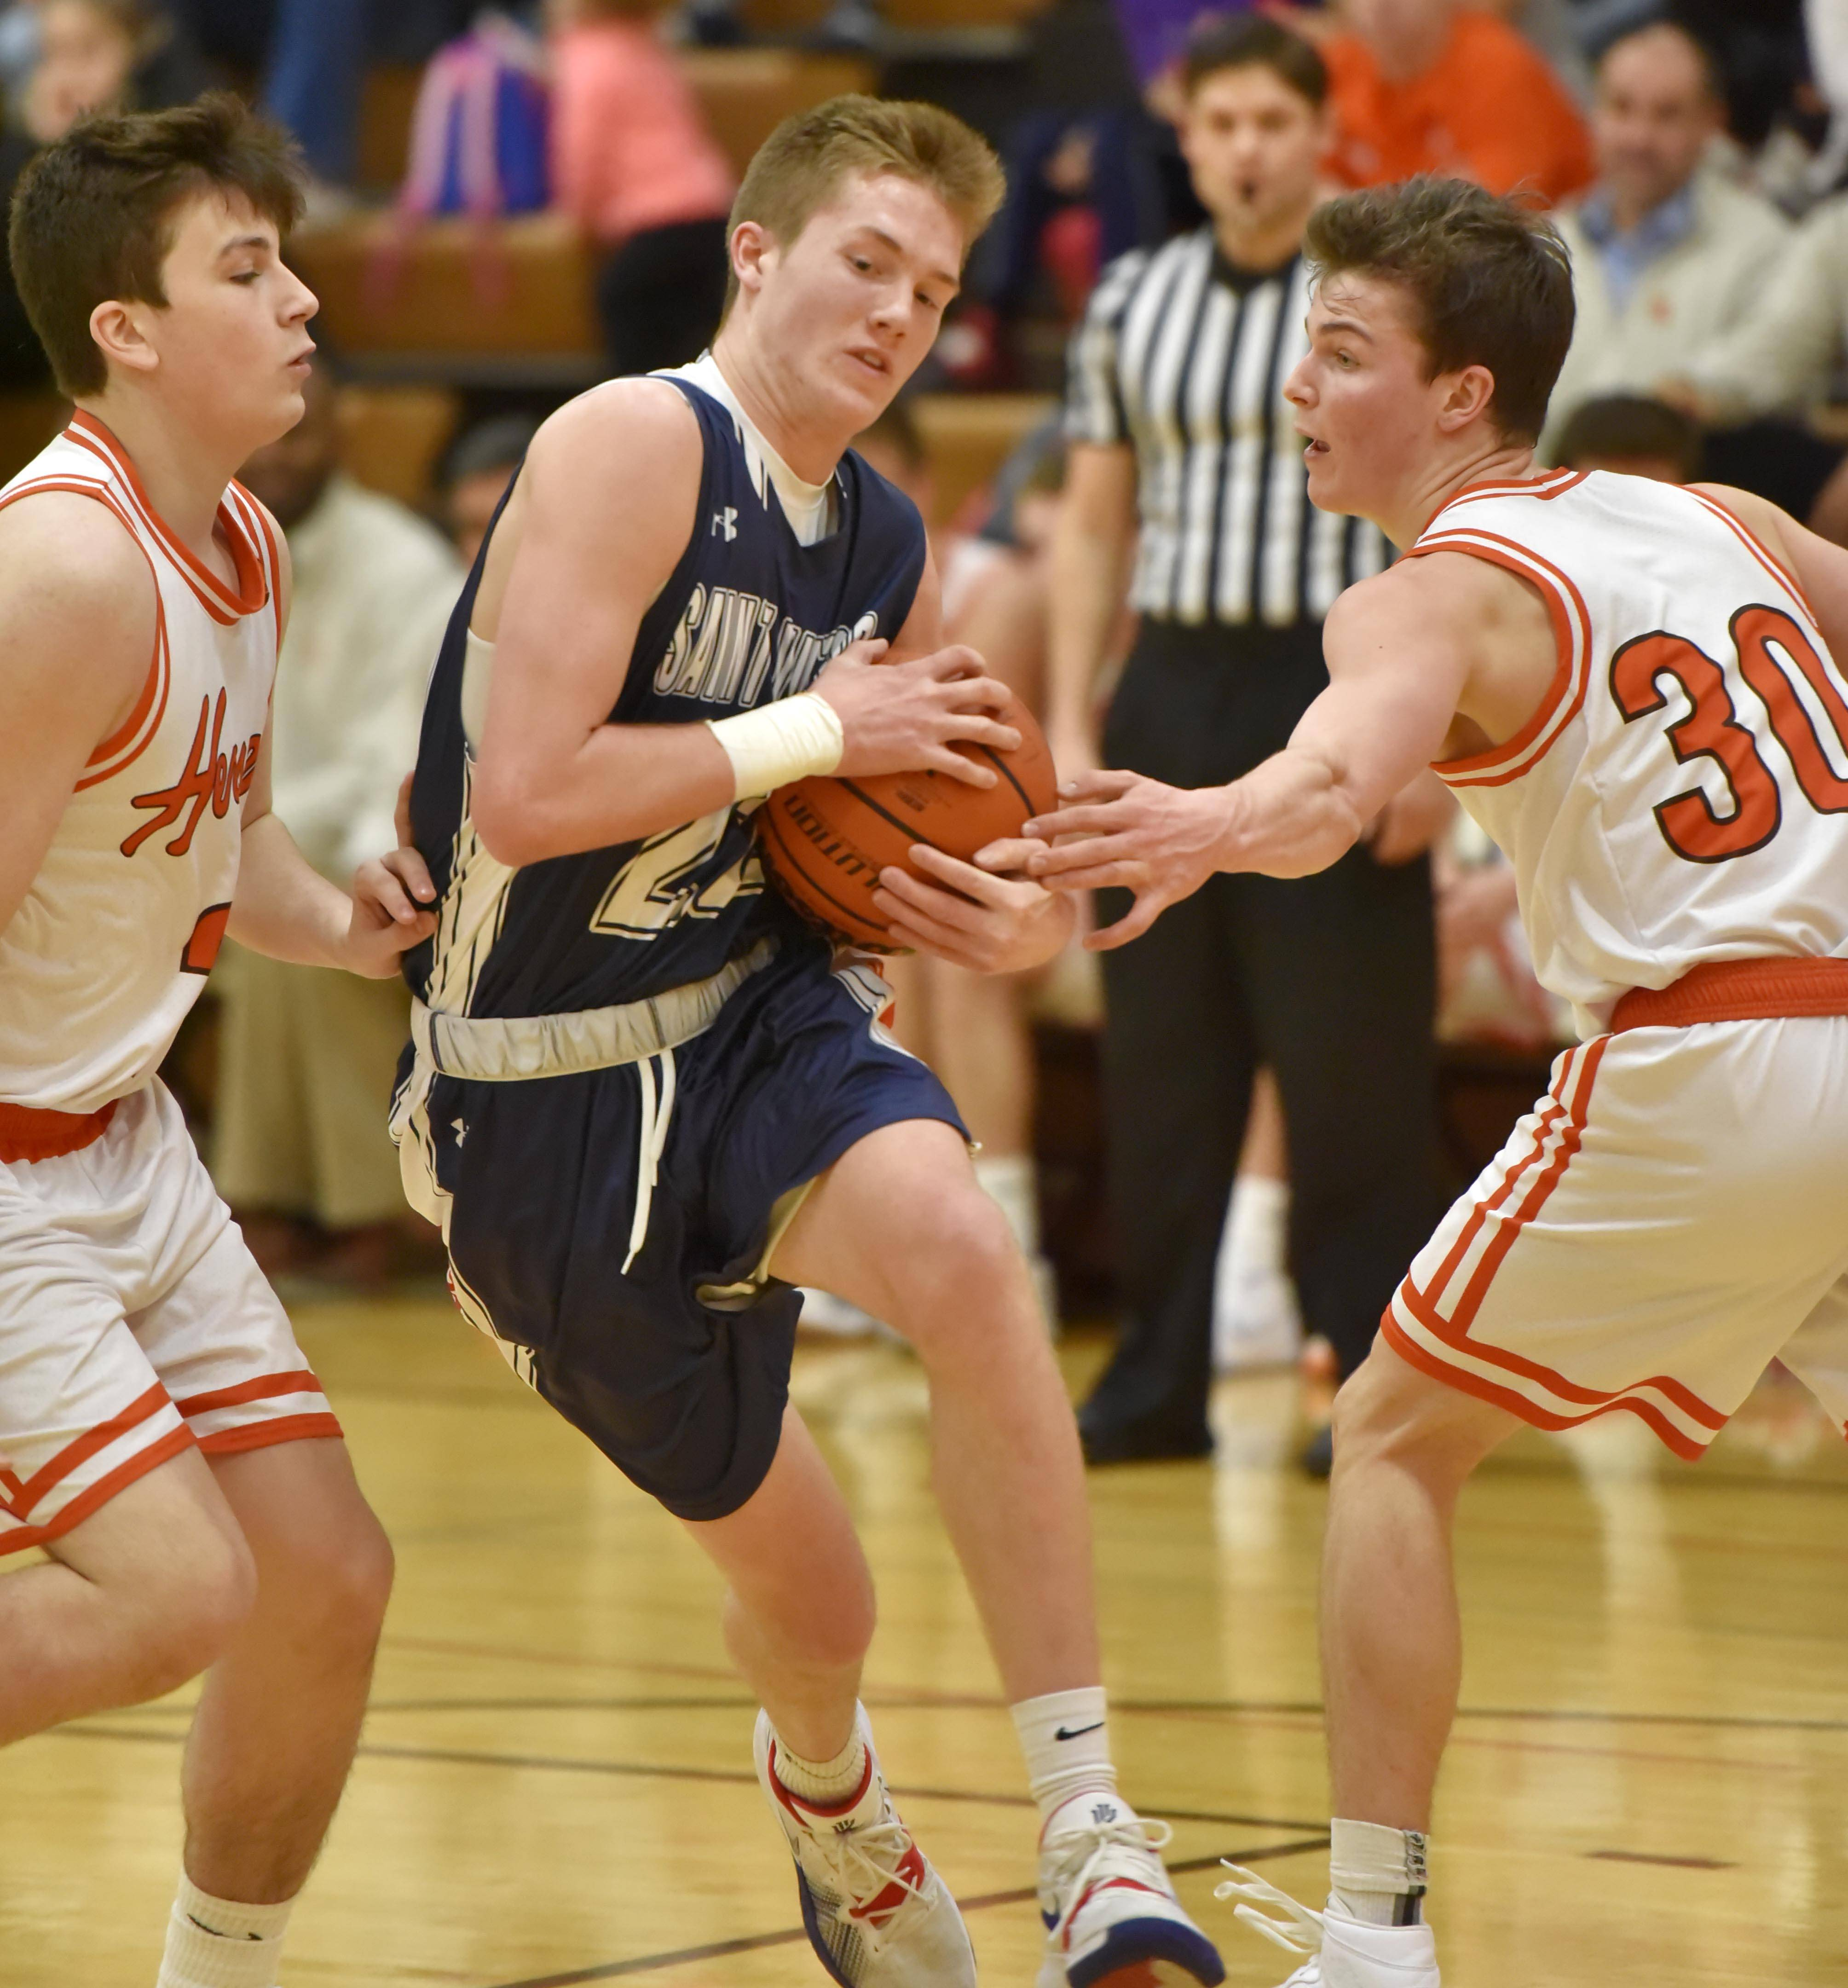 St. Viator's Kevin Murphy drives between Hersey's Brent Wolff and Jason Schmidt, right, Saturday in a boys basketball game in Arlington Heights.